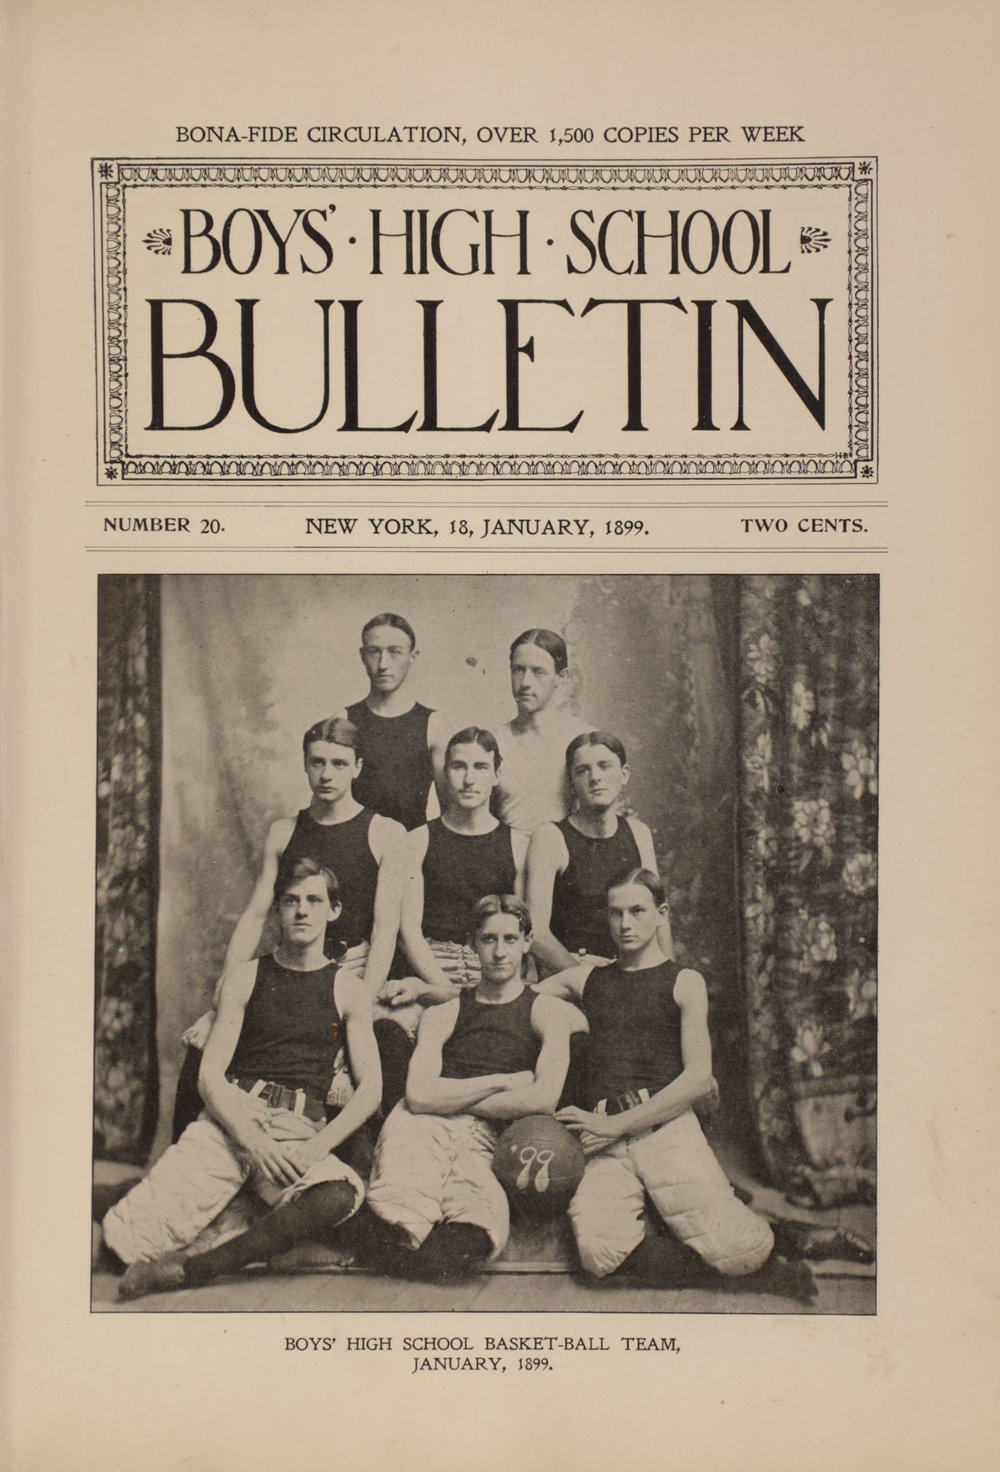 Boys High School Bulletin , January 18, 1899. Board of Education Collection, NYC Municipal Archives.